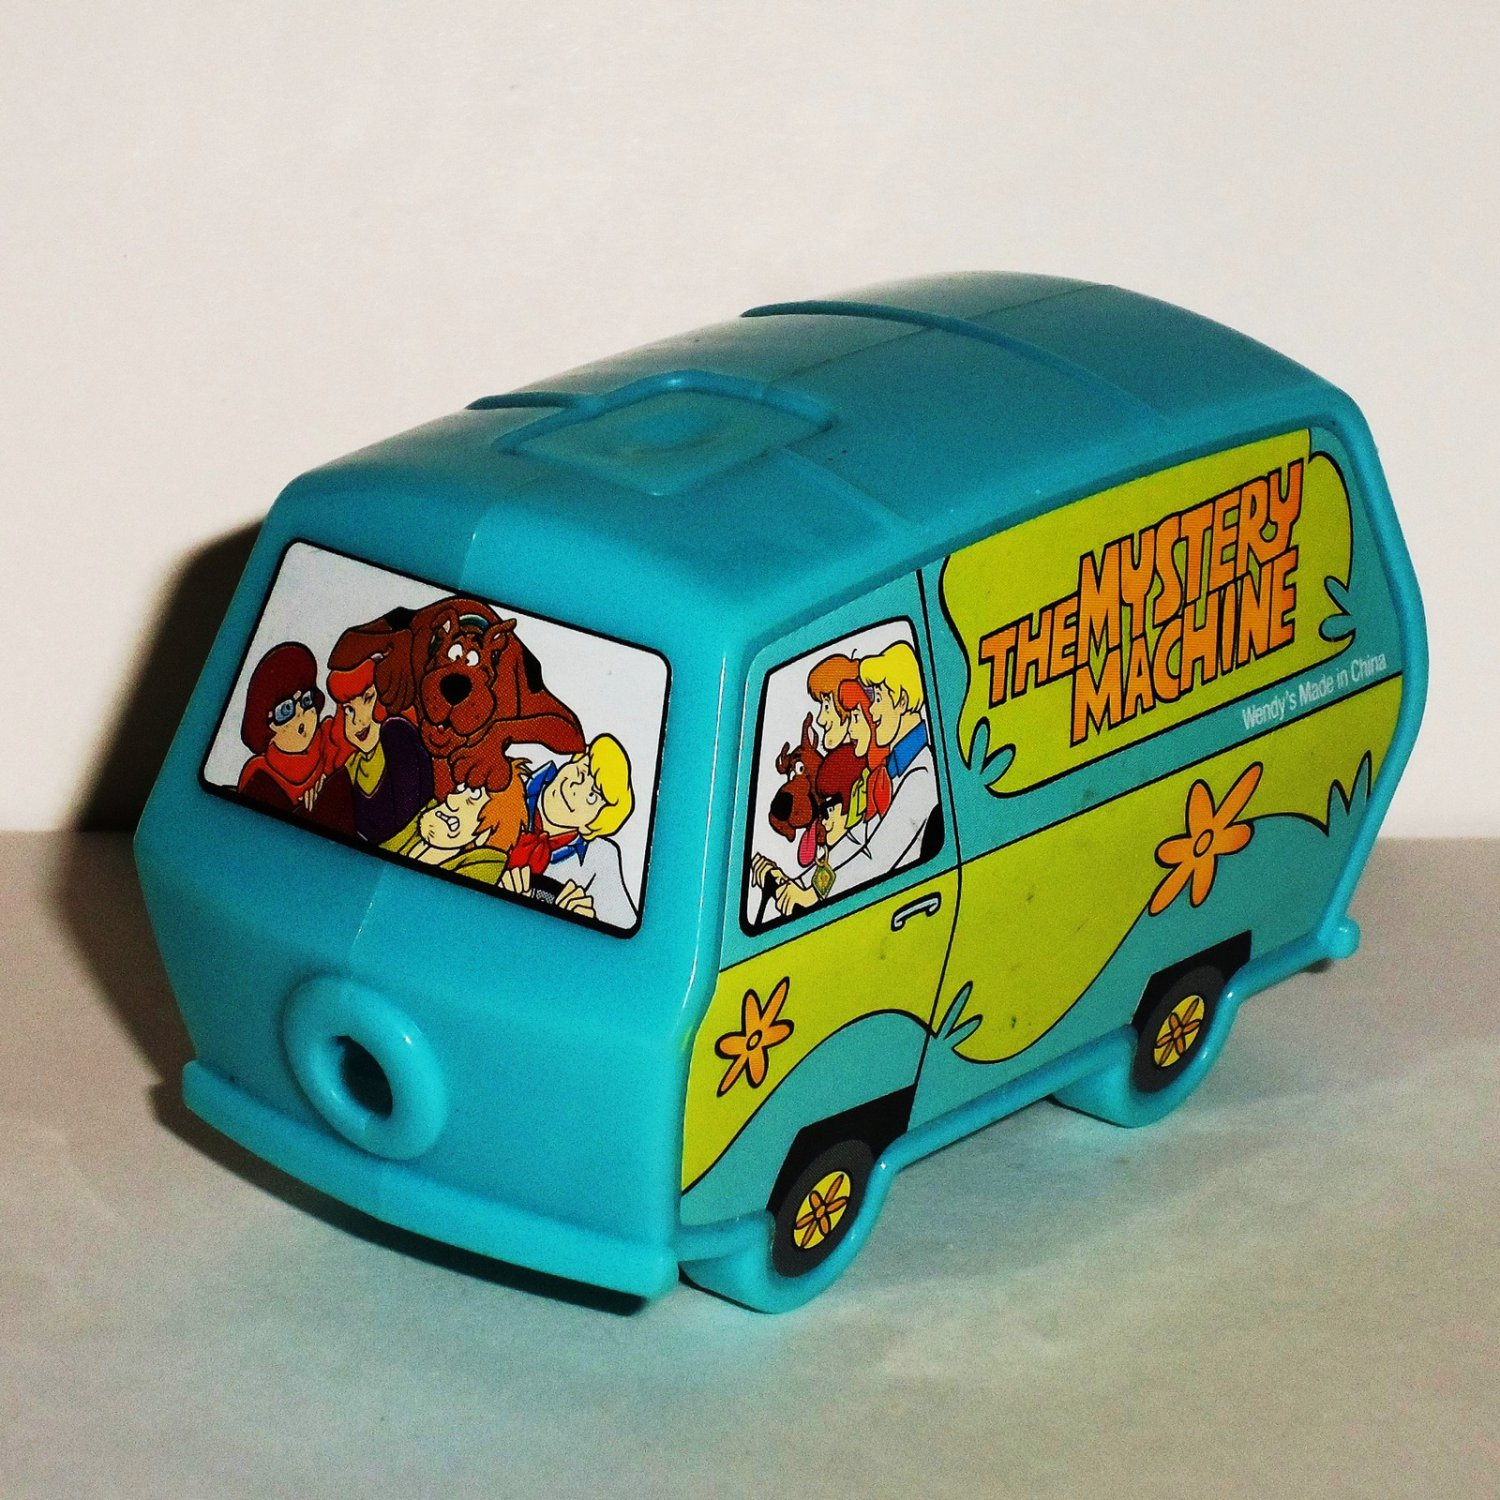 Wendy's 2014 Scooby Doo Secret Message Mystery Machine Kids' Meal Toy Loose Used